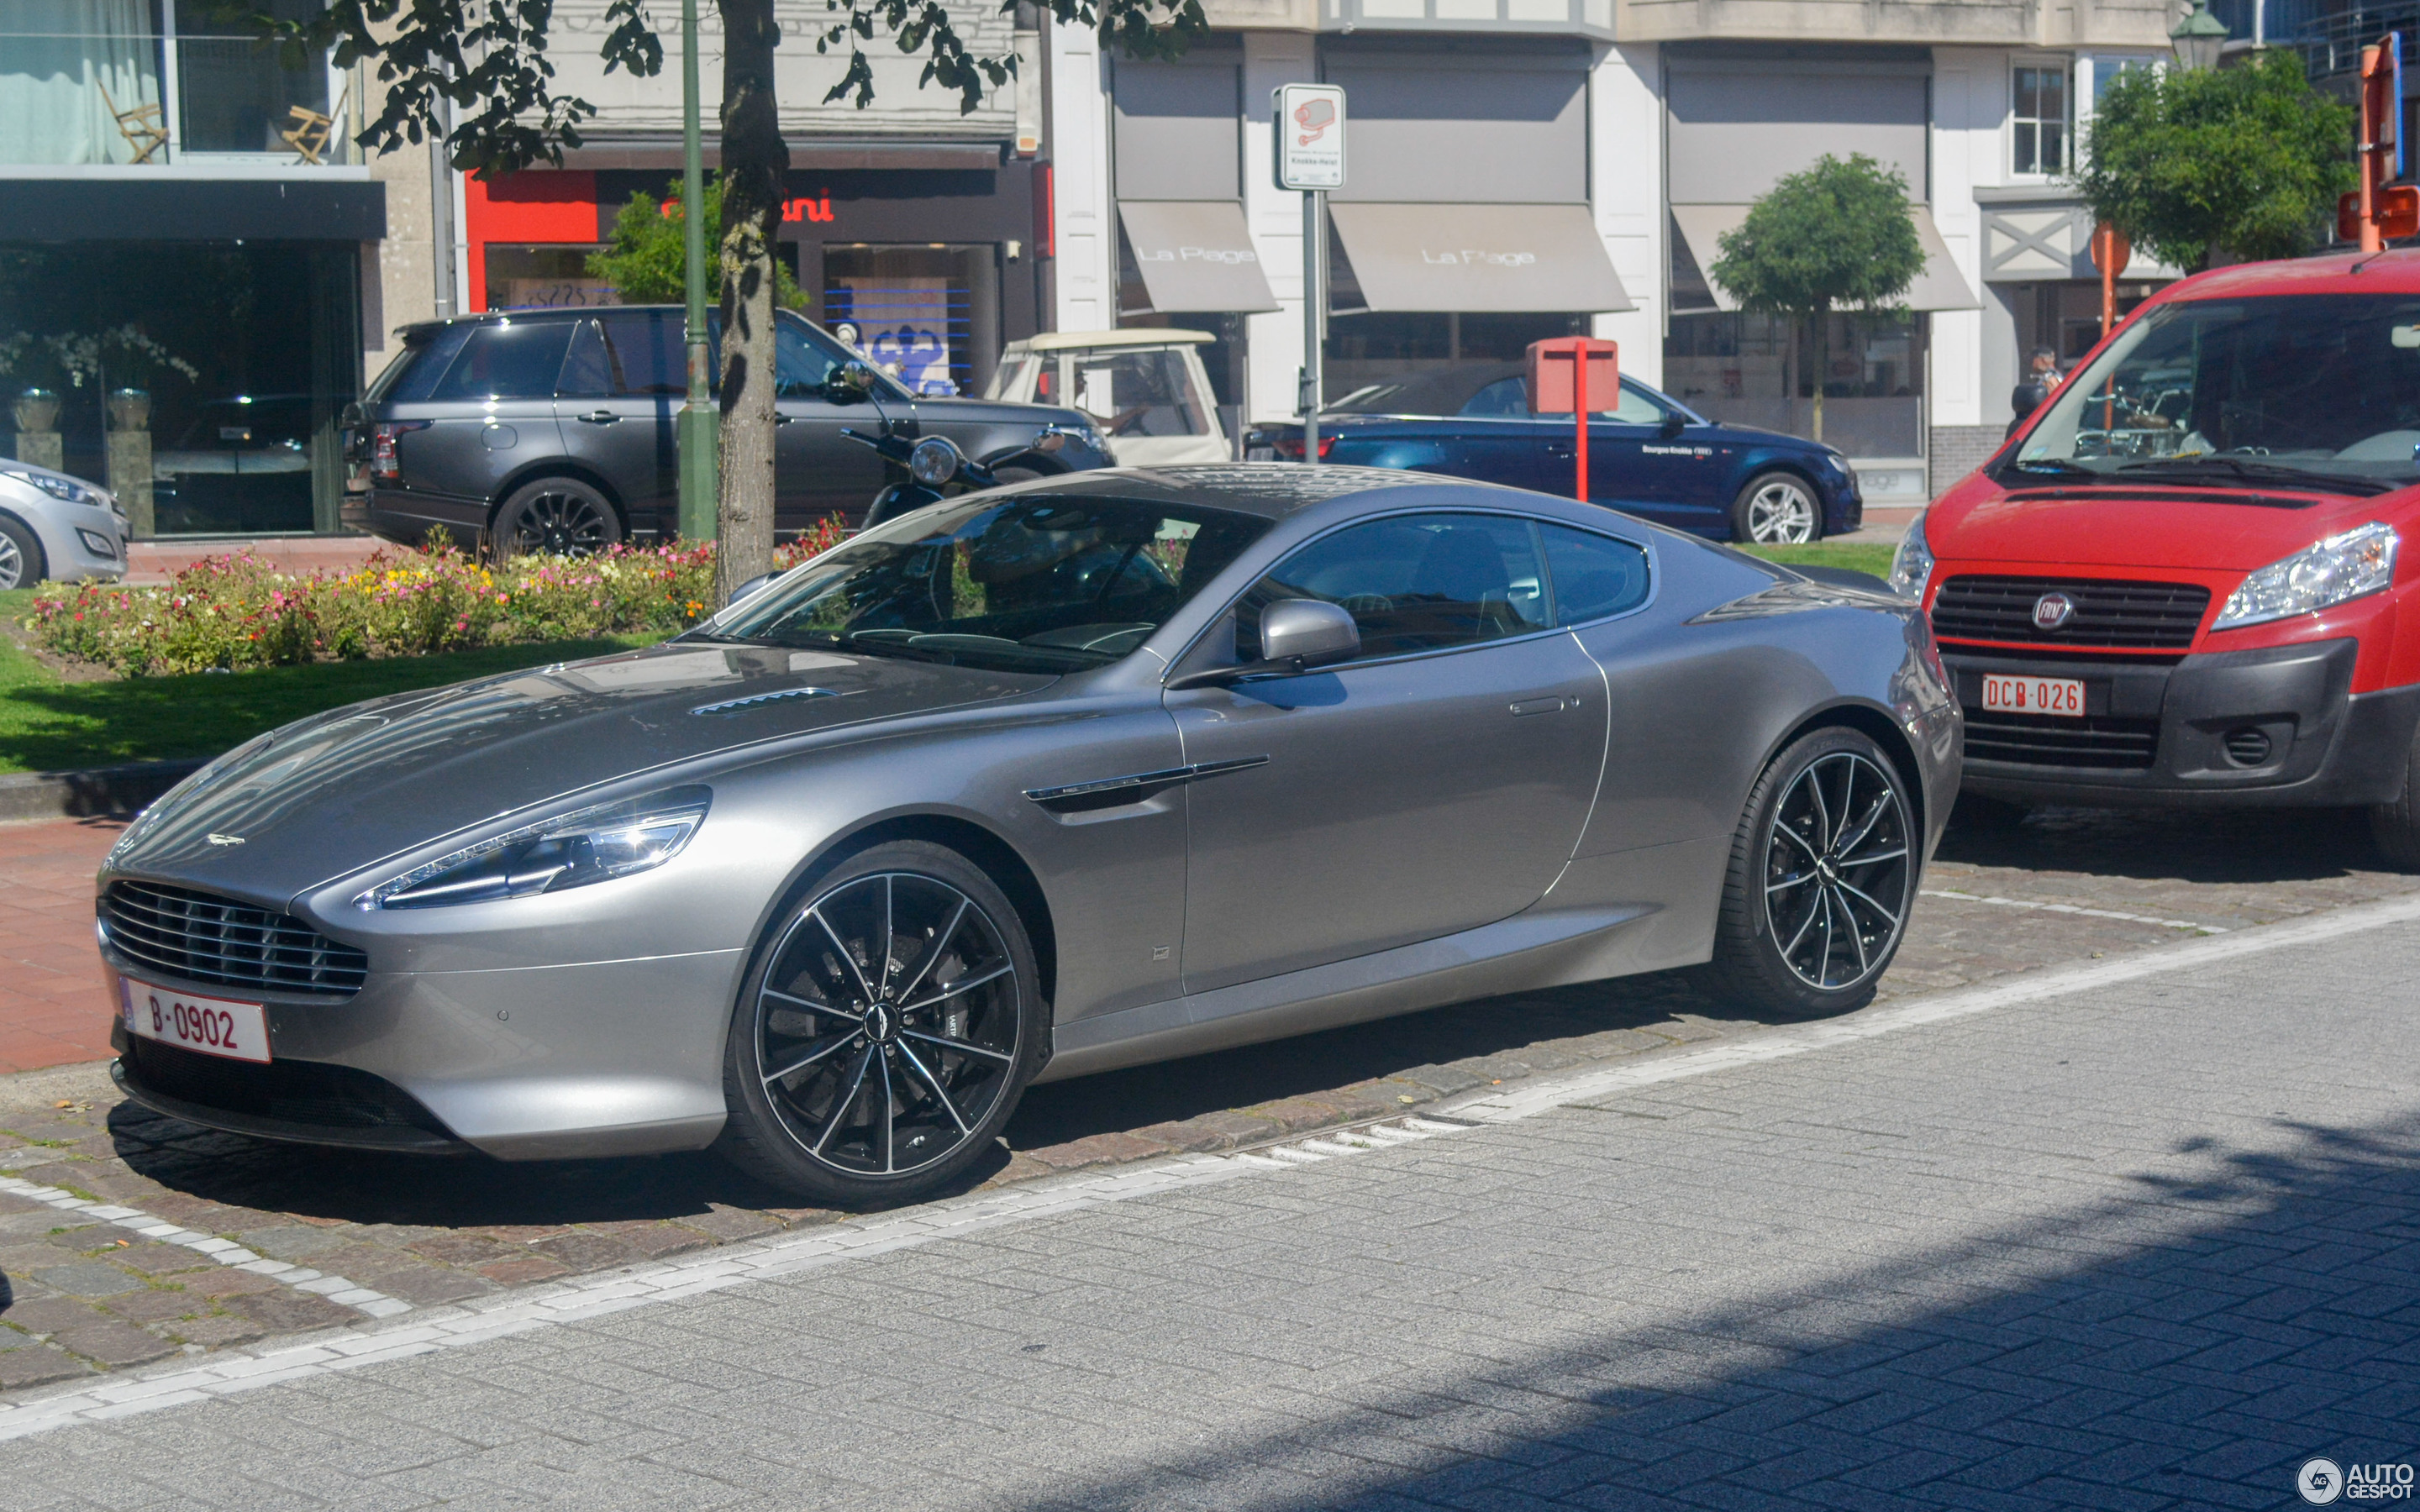 aston martin db9 gt 2016 bond edition - 28 august 2016 - autogespot